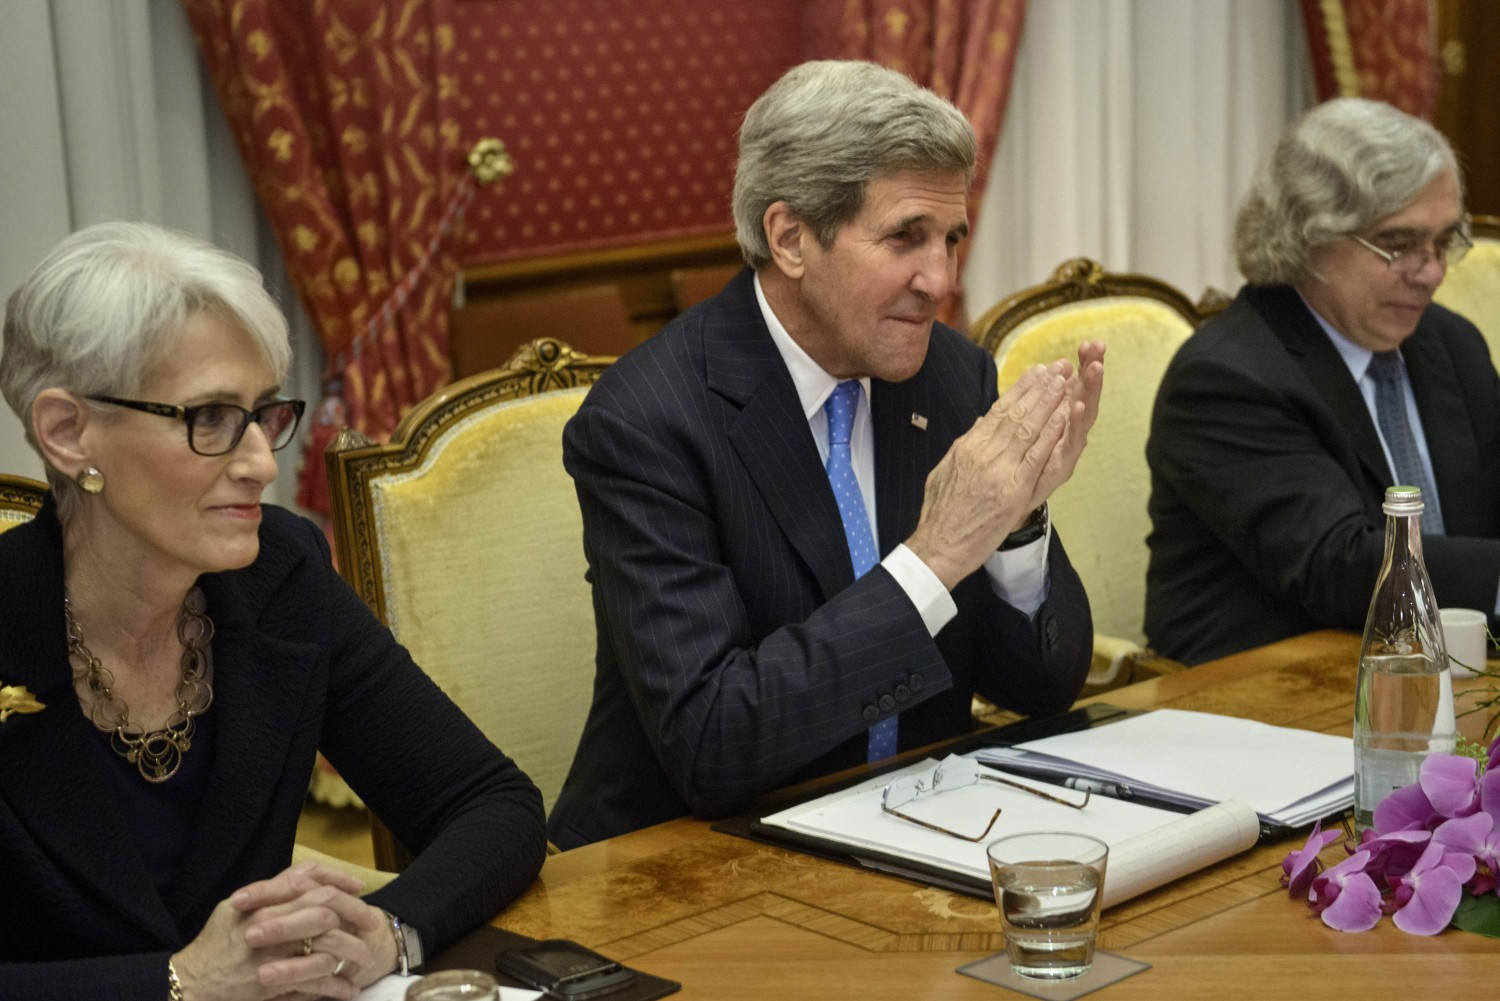 Under Secretary for Political Affairs Wendy Sherman, U.S. Secretary of State John Kerry and U.S. Secretary of Energy Ernest Moniz wait for a meeting with the Iranians in Switzerland on March 29, 2015.